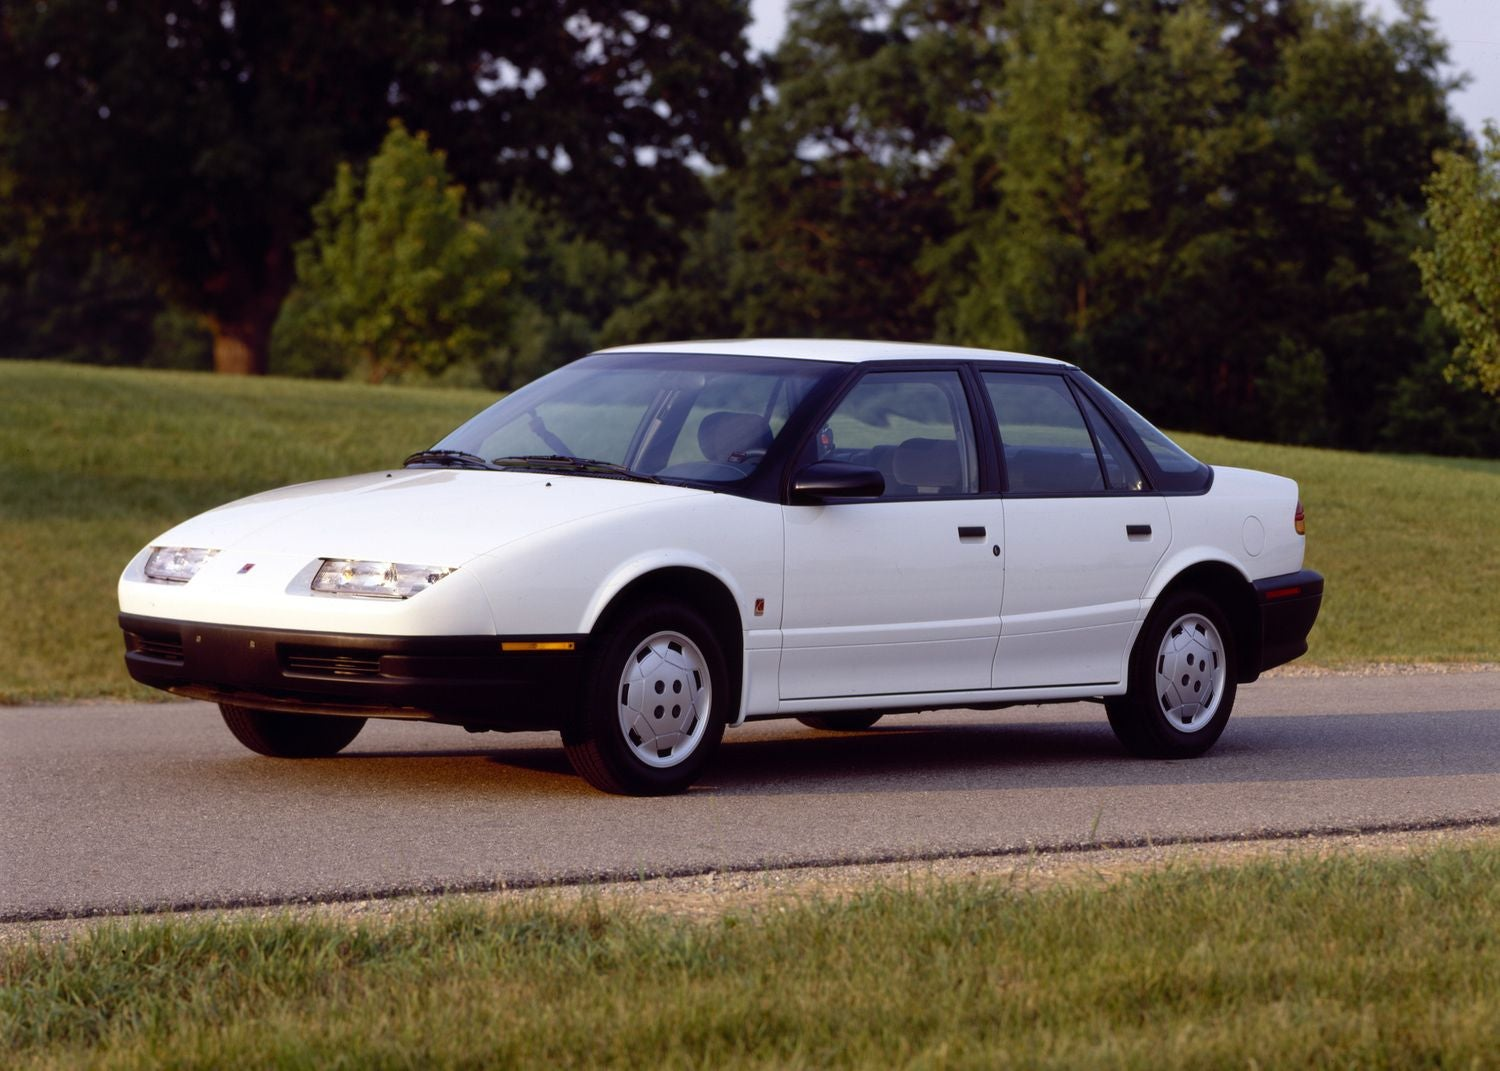 Saturn The Most Indifferent Automotive Brand